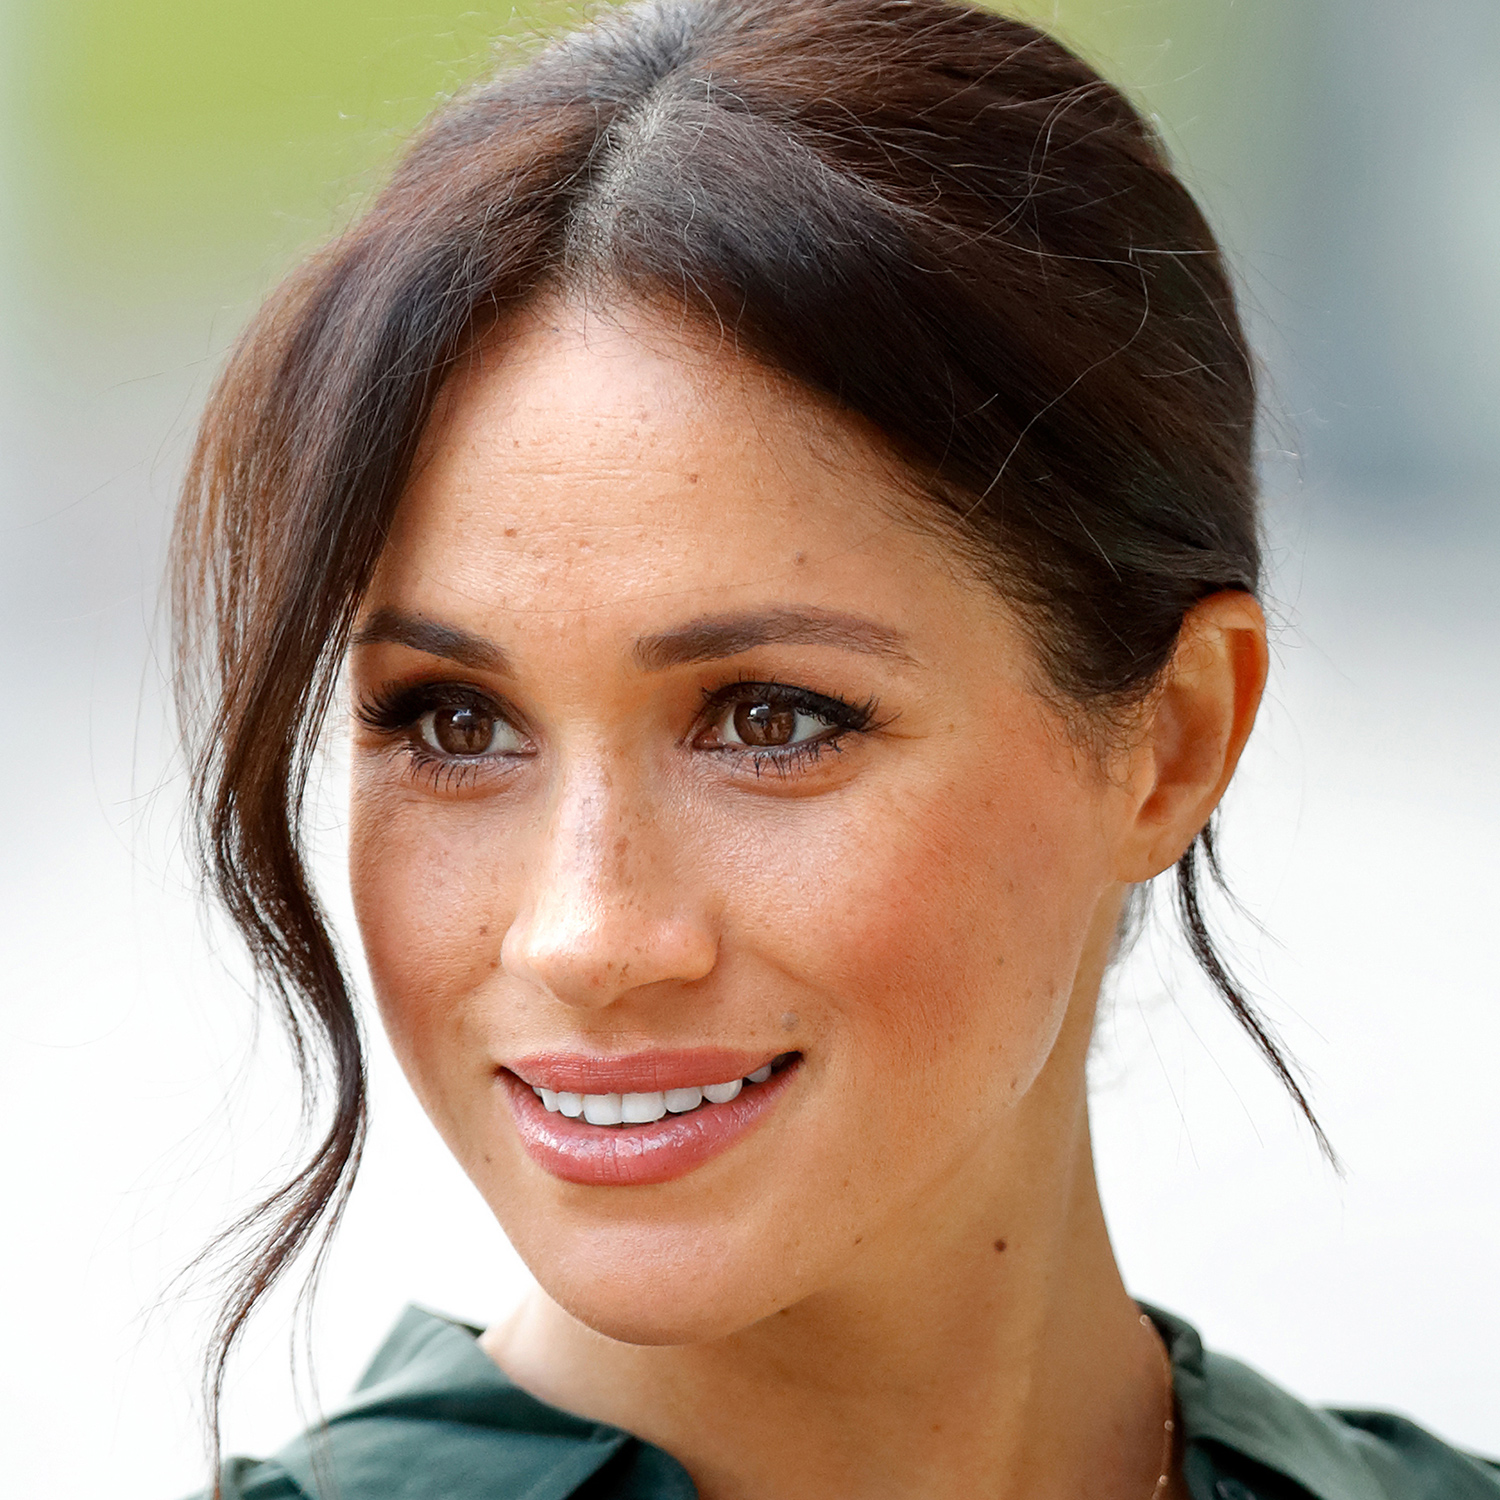 meghan markle time person of the year 2018 runner up time com time magazine